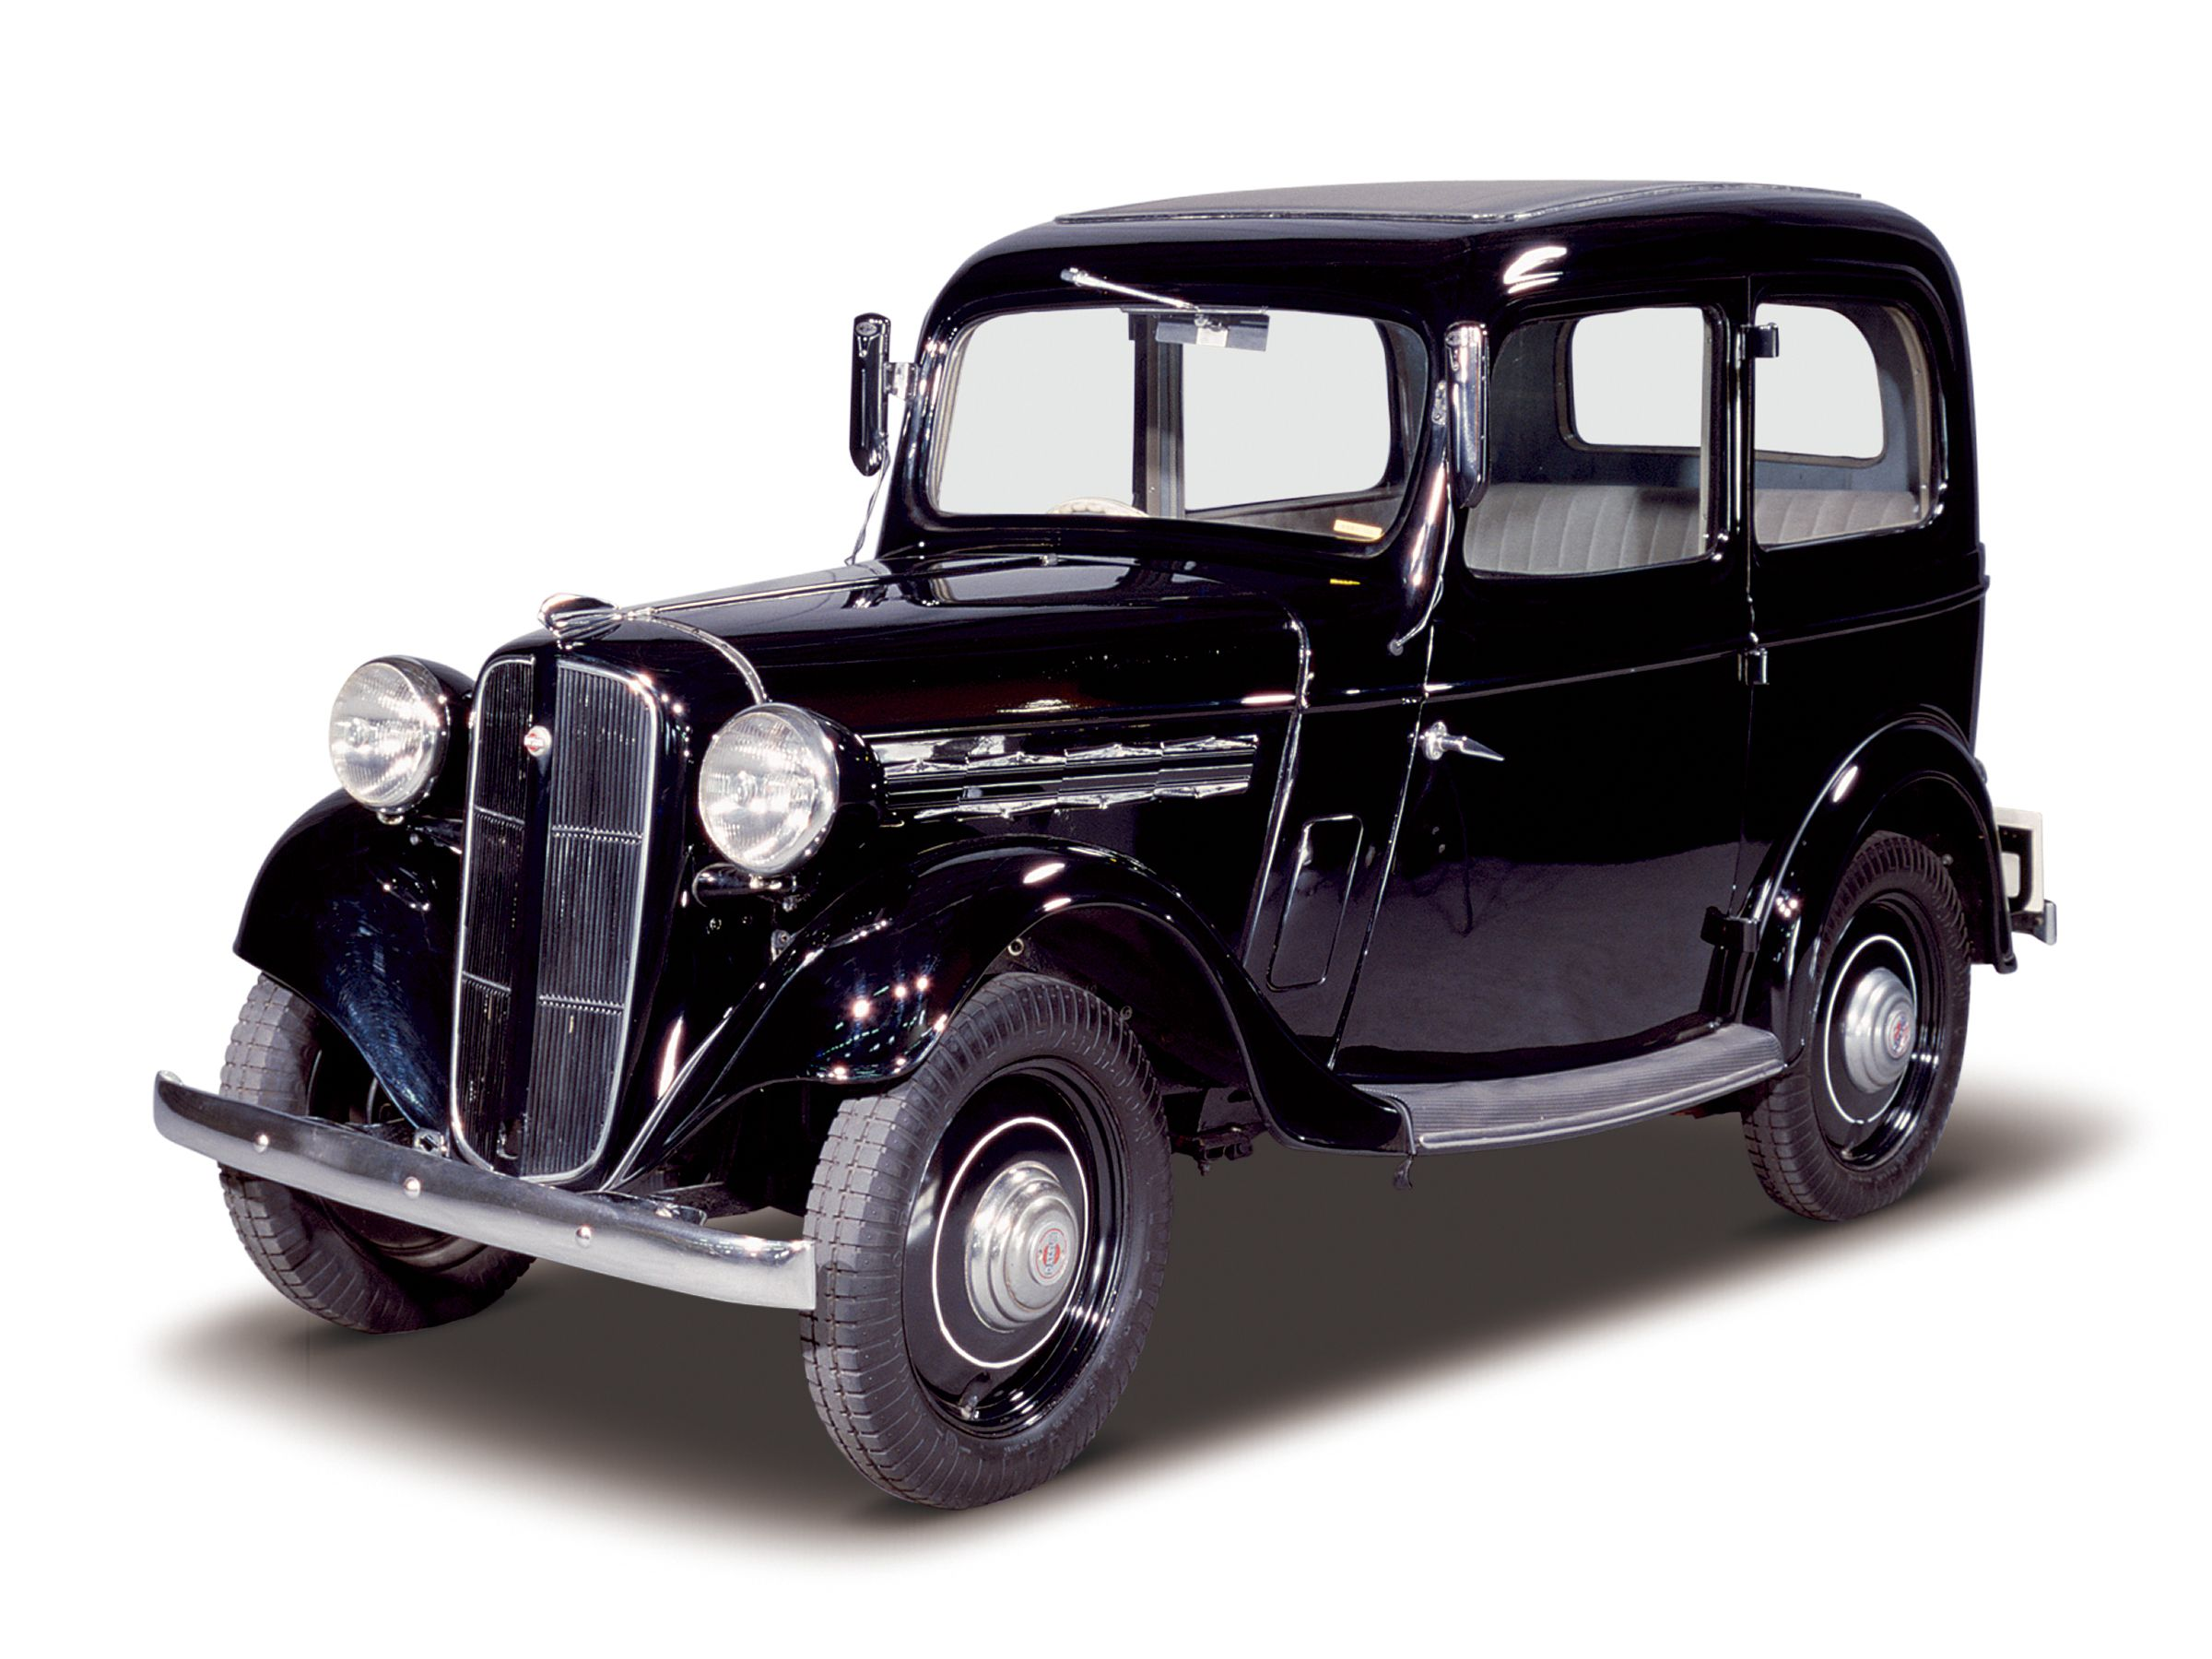 1938 Datsun Sedan. This rugged and very economical Datsun was hugely ...